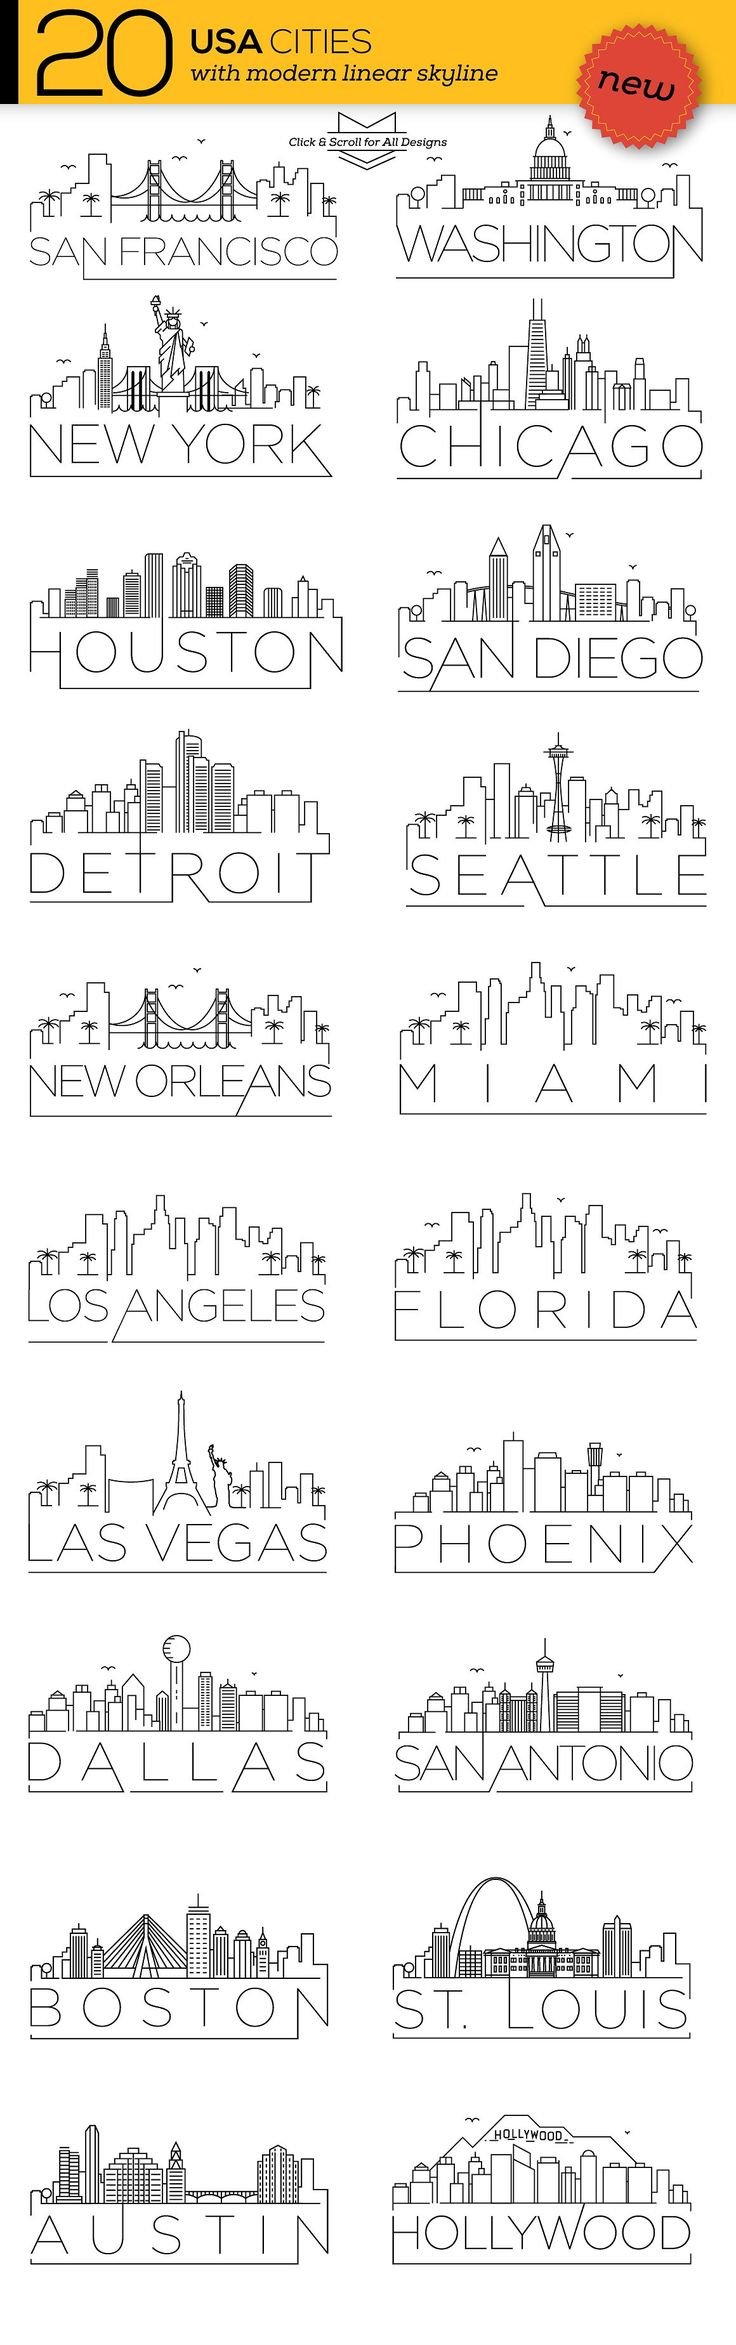 20 USA Cities Linear Skyline by Avny on @creativemarket